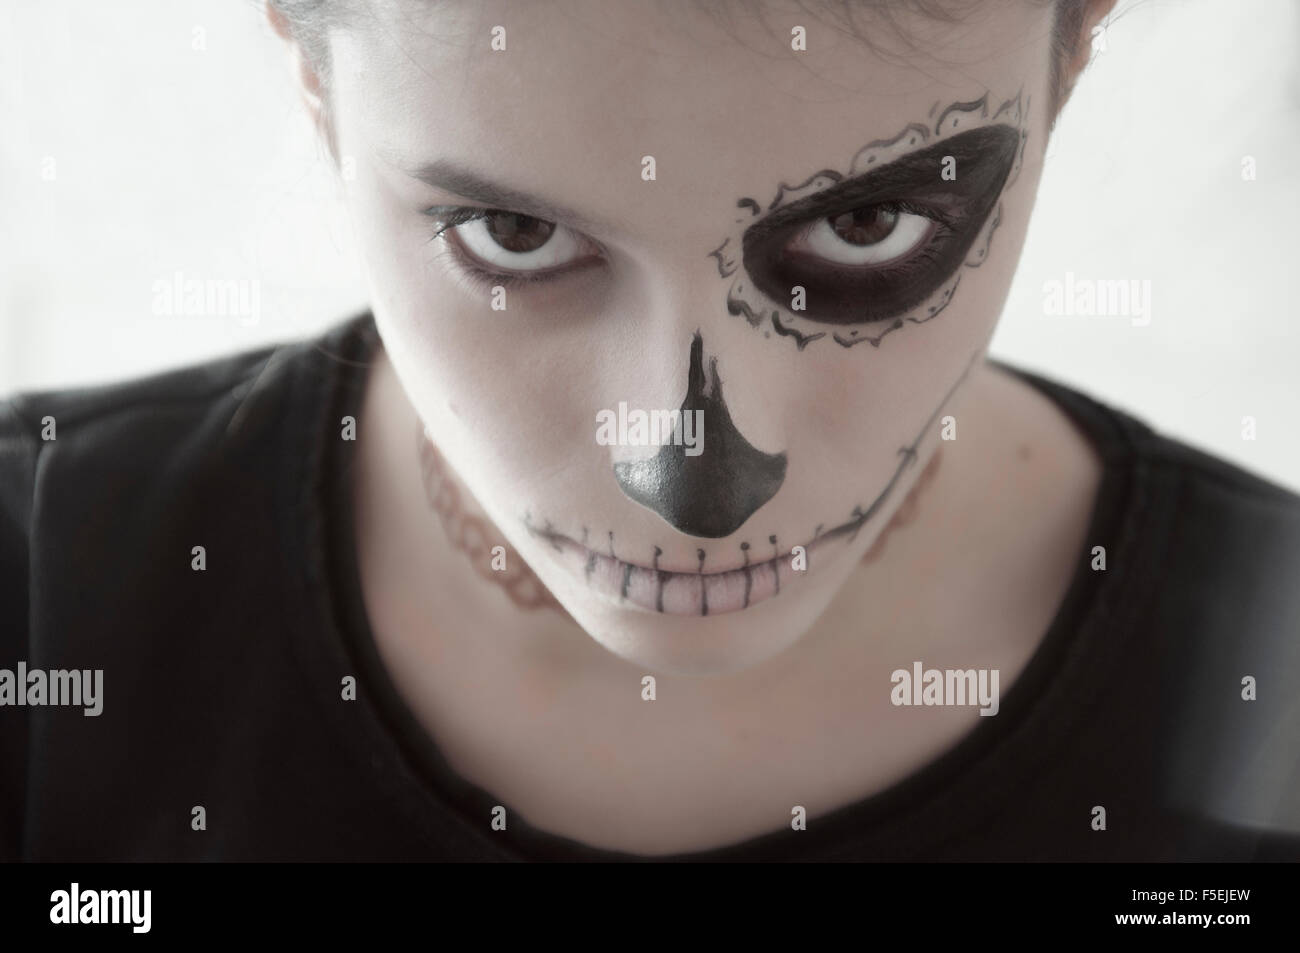 Girl with a painted face for Halloween - Stock Image